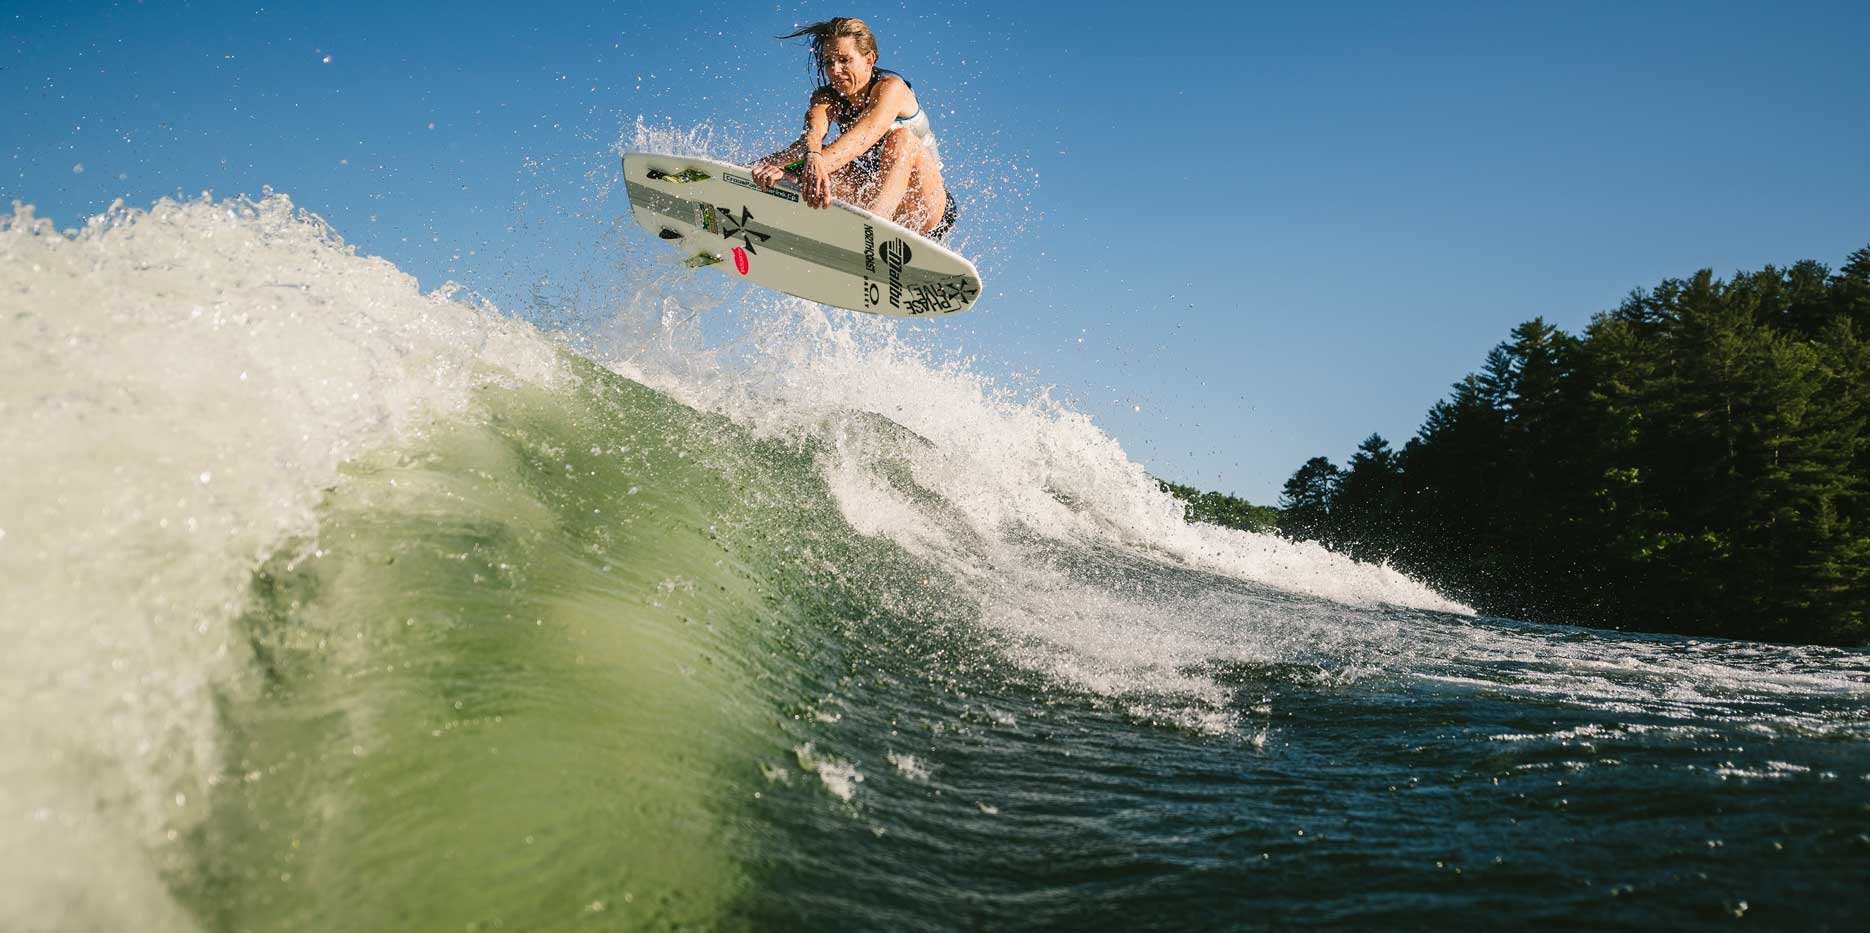 Wakesurf air on the 25 LSV wave